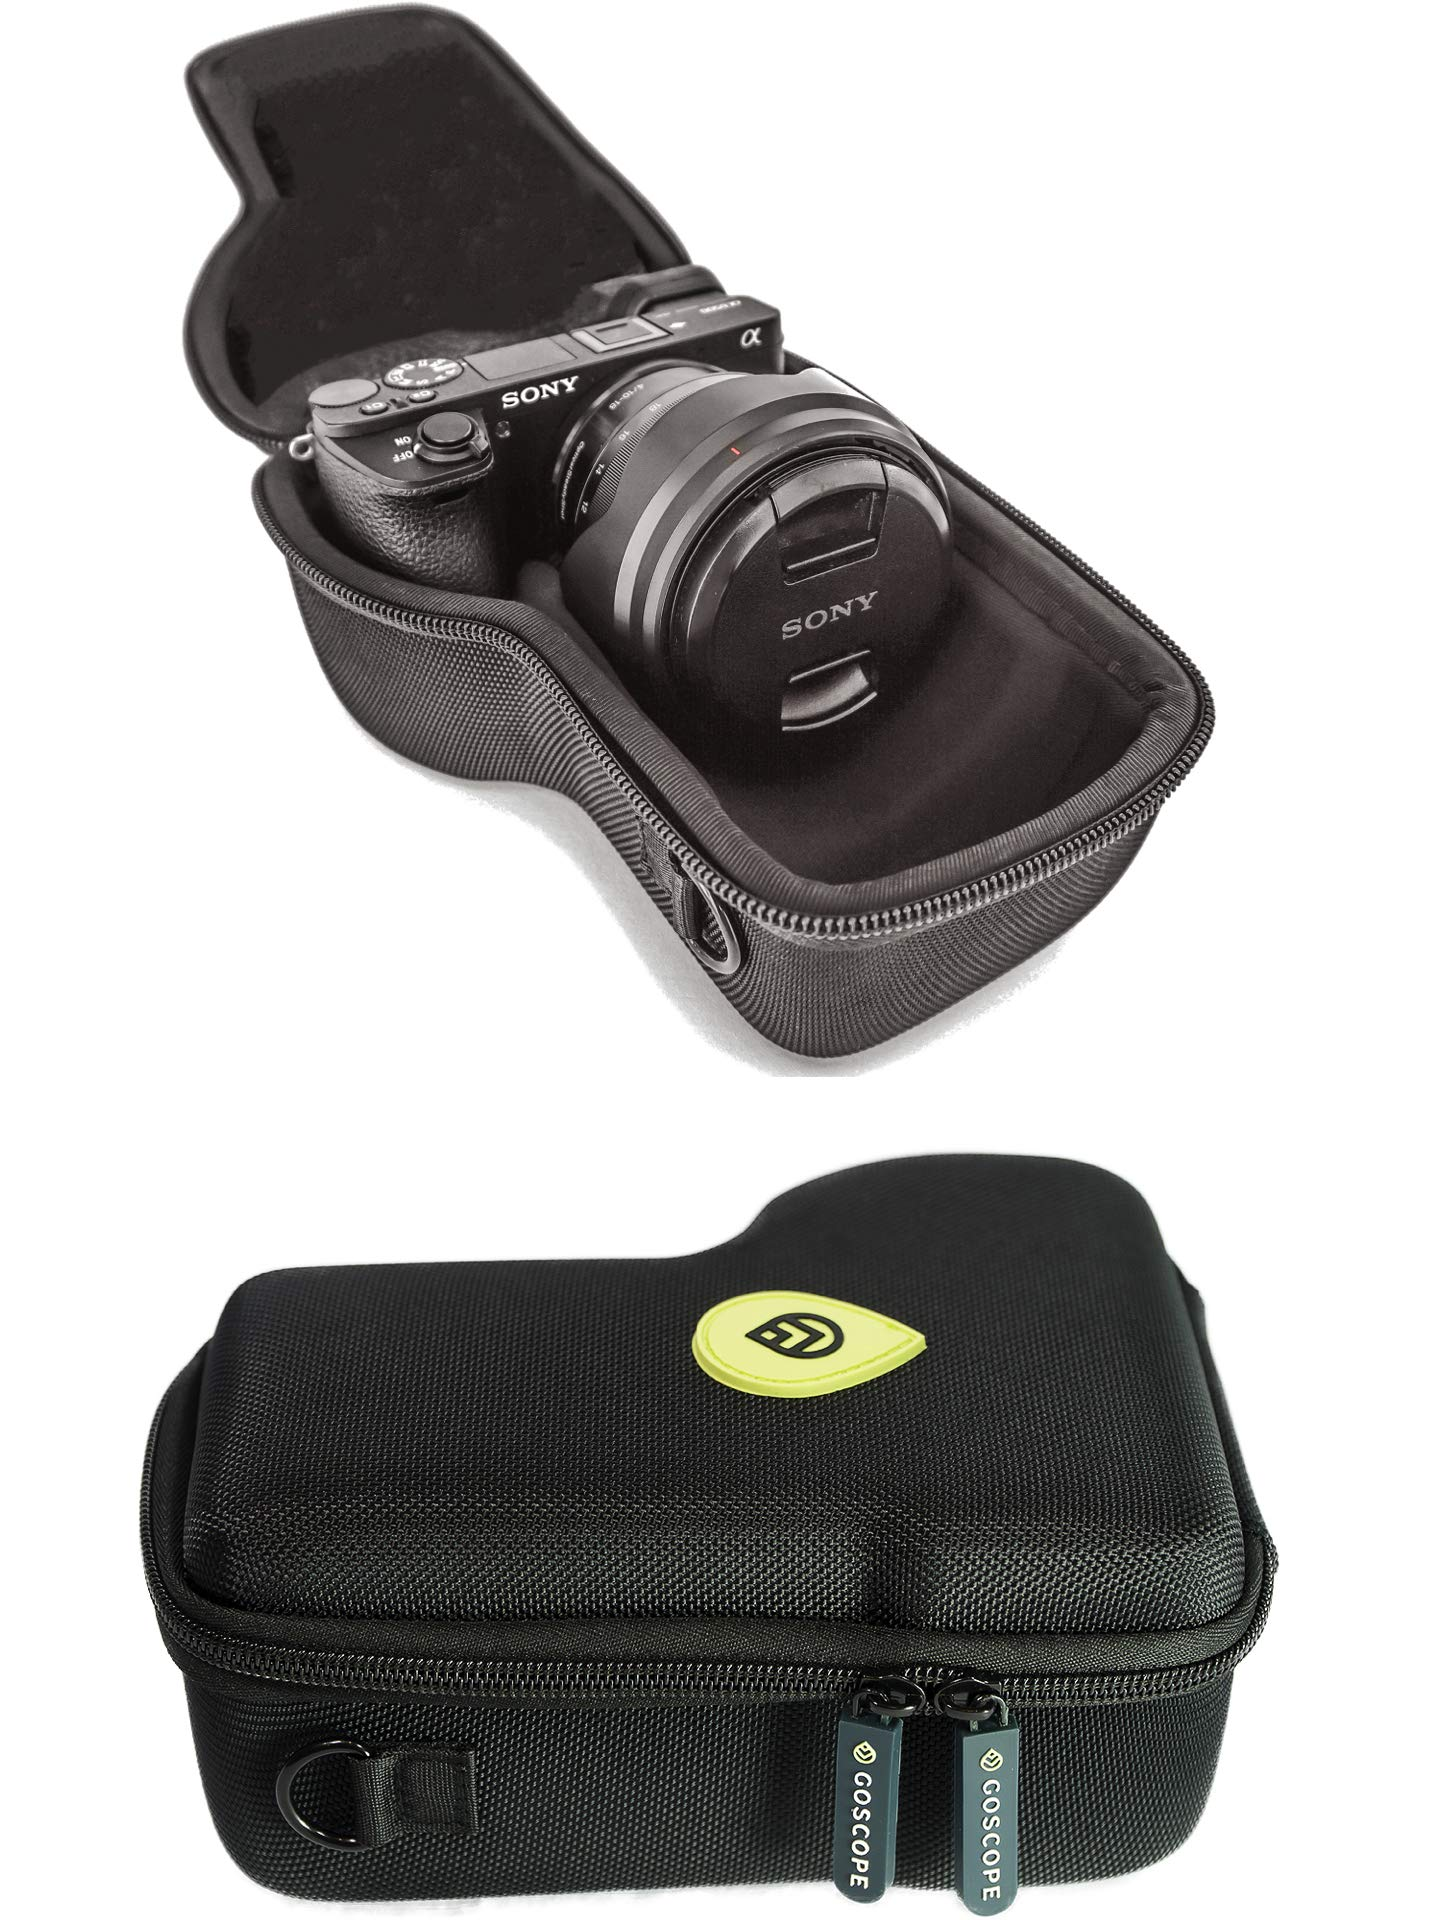 GoScope Alpha GO CASE {MICBERGSMA Edition} Compact Hard case Compatible with Sony Alpha a6000, a6300, a6400, a6500 Camera Body w/Lens Sizes 10mm-105mm [ Hard Camera case ] FITS Camera & Lens